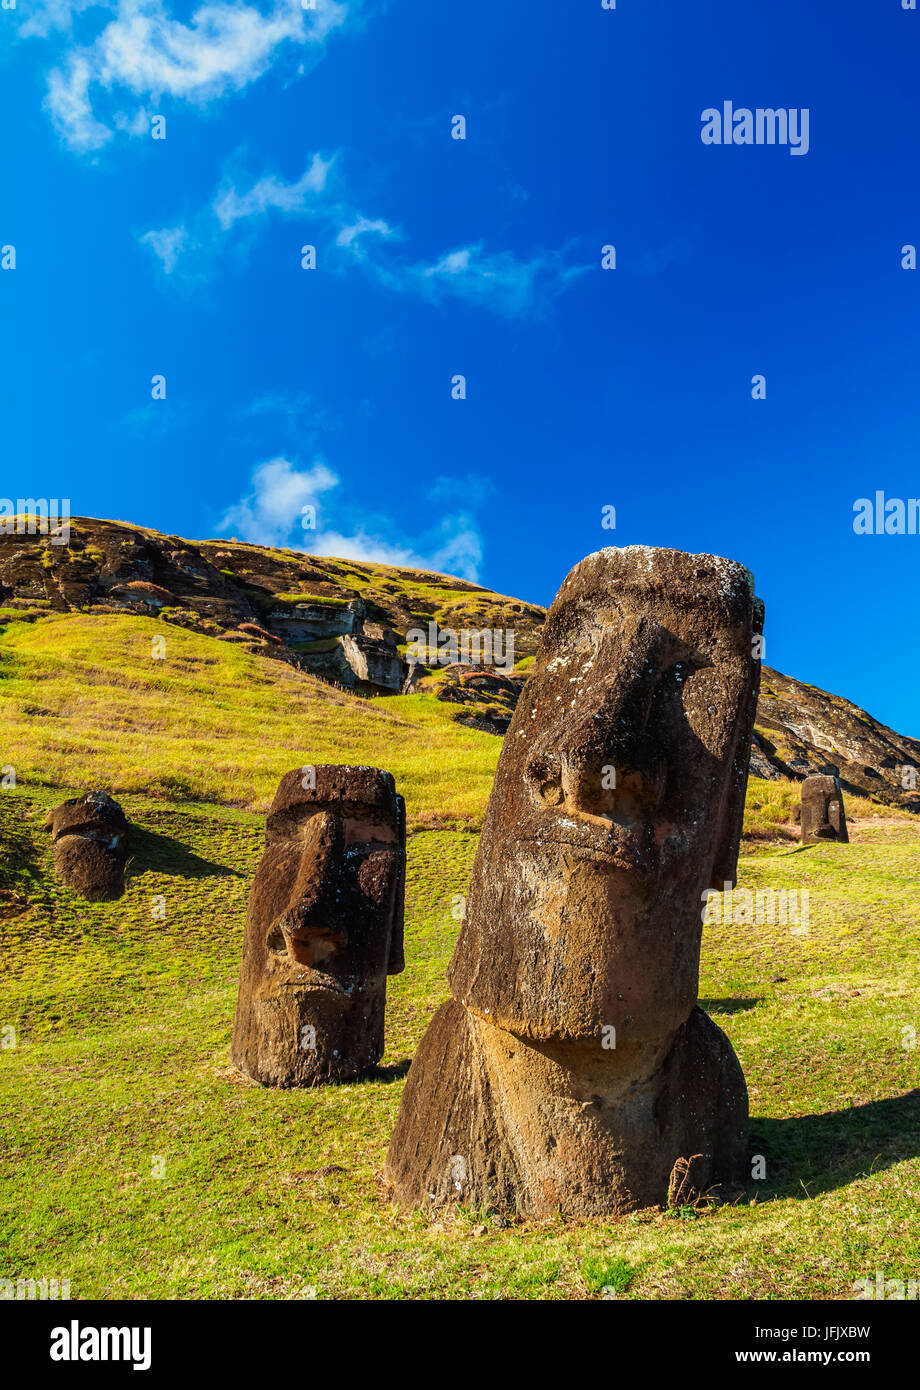 Moais at the quarry on the slope of the Rano Raraku Volcano, Rapa Nui National Park, Easter Island, Chile - Stock Image